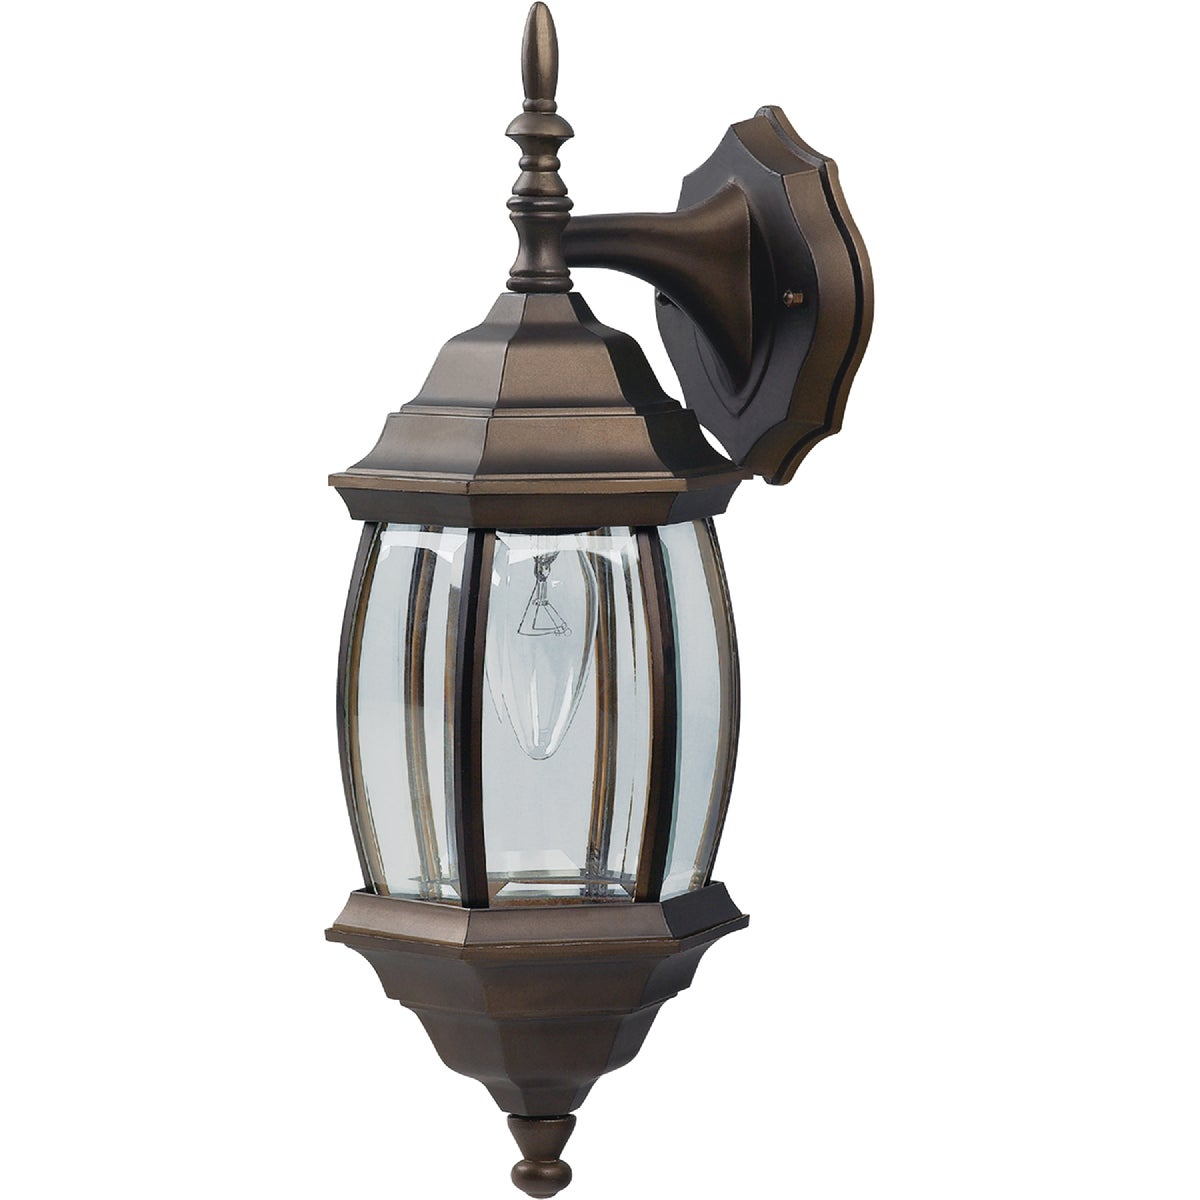 ORB OUTDOOR FIXTURE - IOL73TORB by Canarm Gs